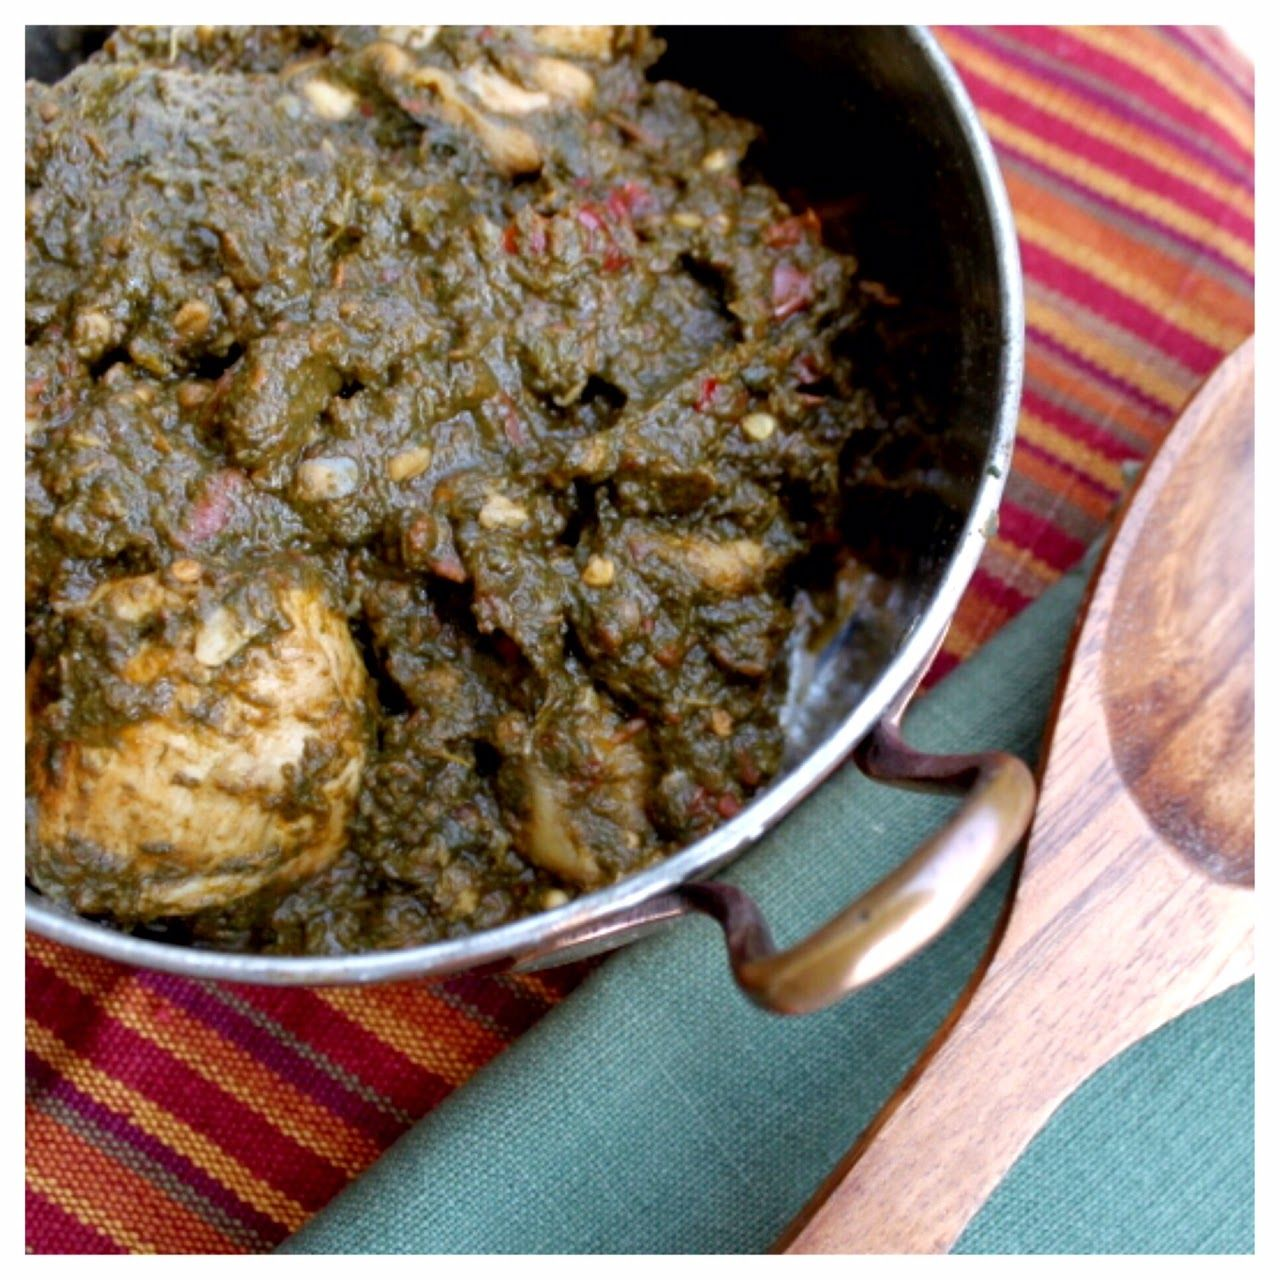 Gawal mandi pakistani style spinach and chicken curry palak palak gosht was cooked a lot in my mothers household during the winter season i never liked what meat did to the spinach while liv forumfinder Image collections